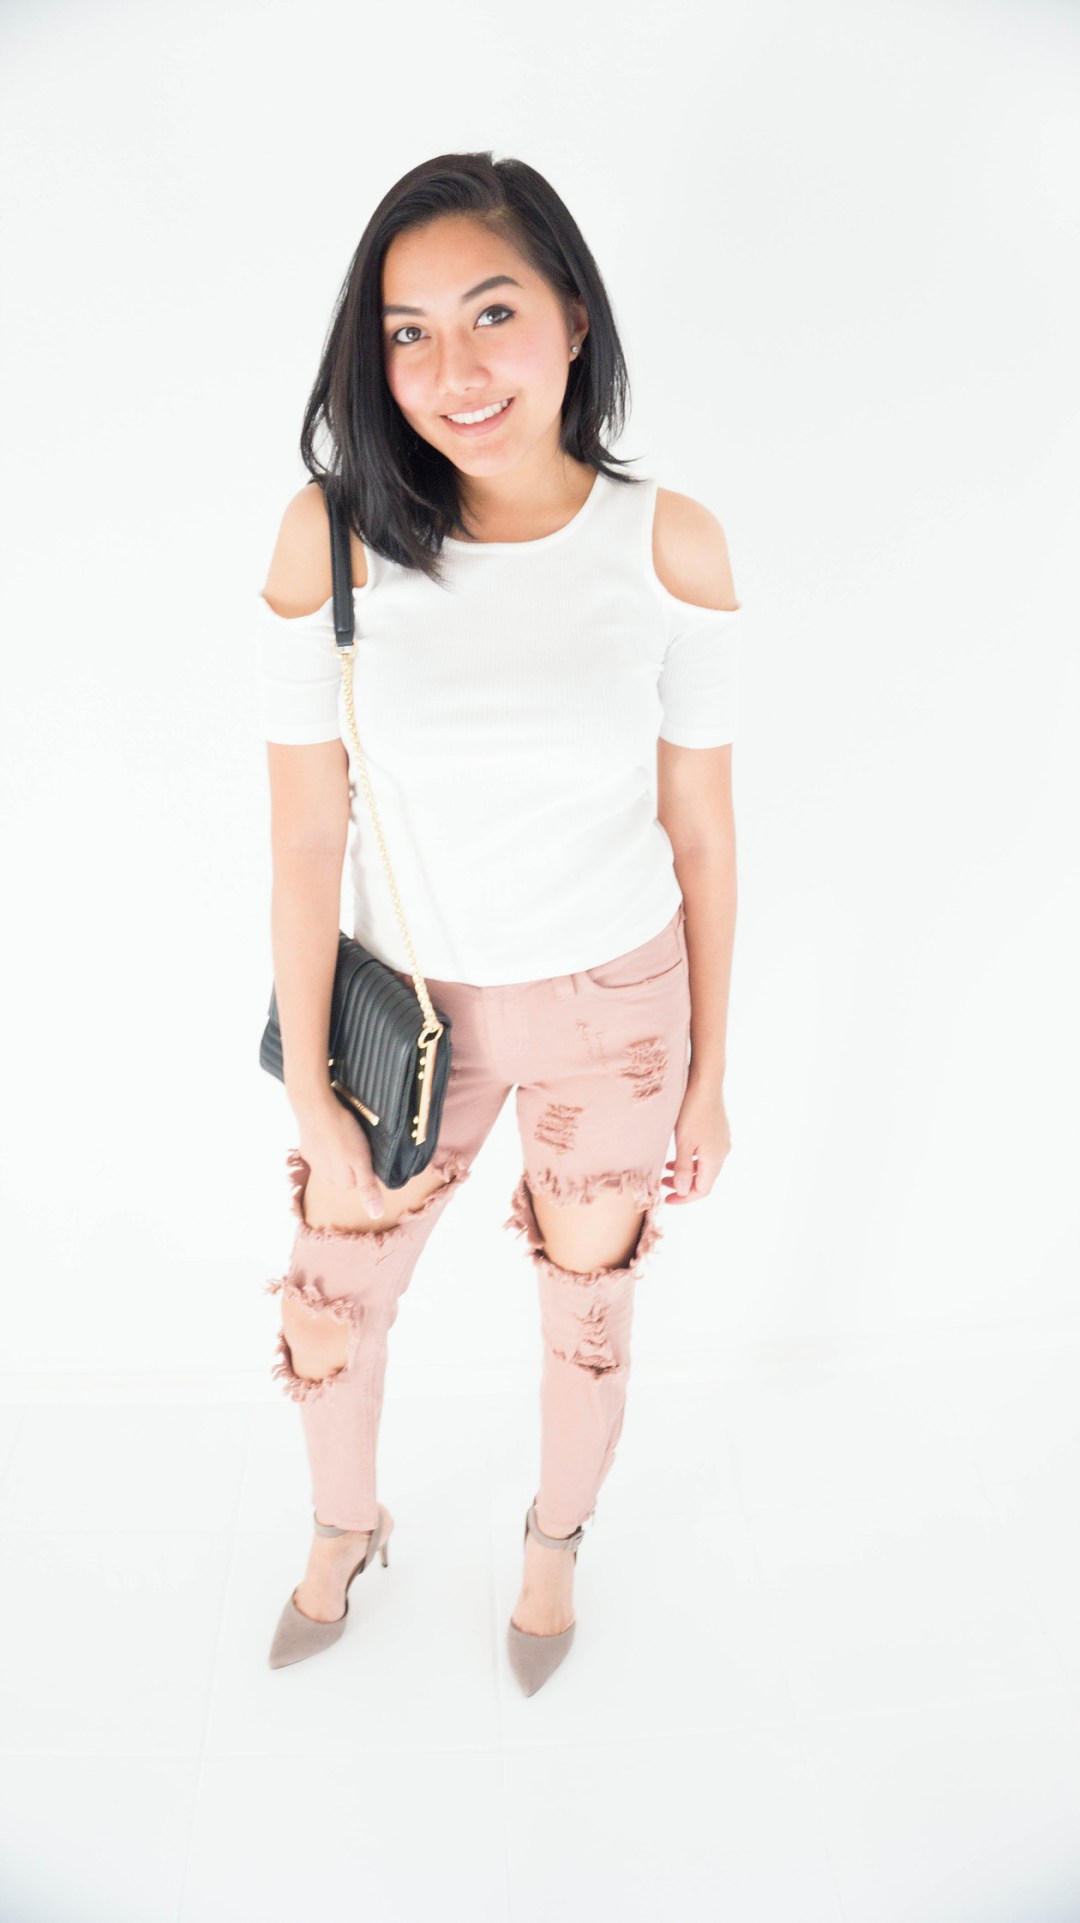 7 Days 7 Outfits | Day 2 Rock The Ripped Jeans